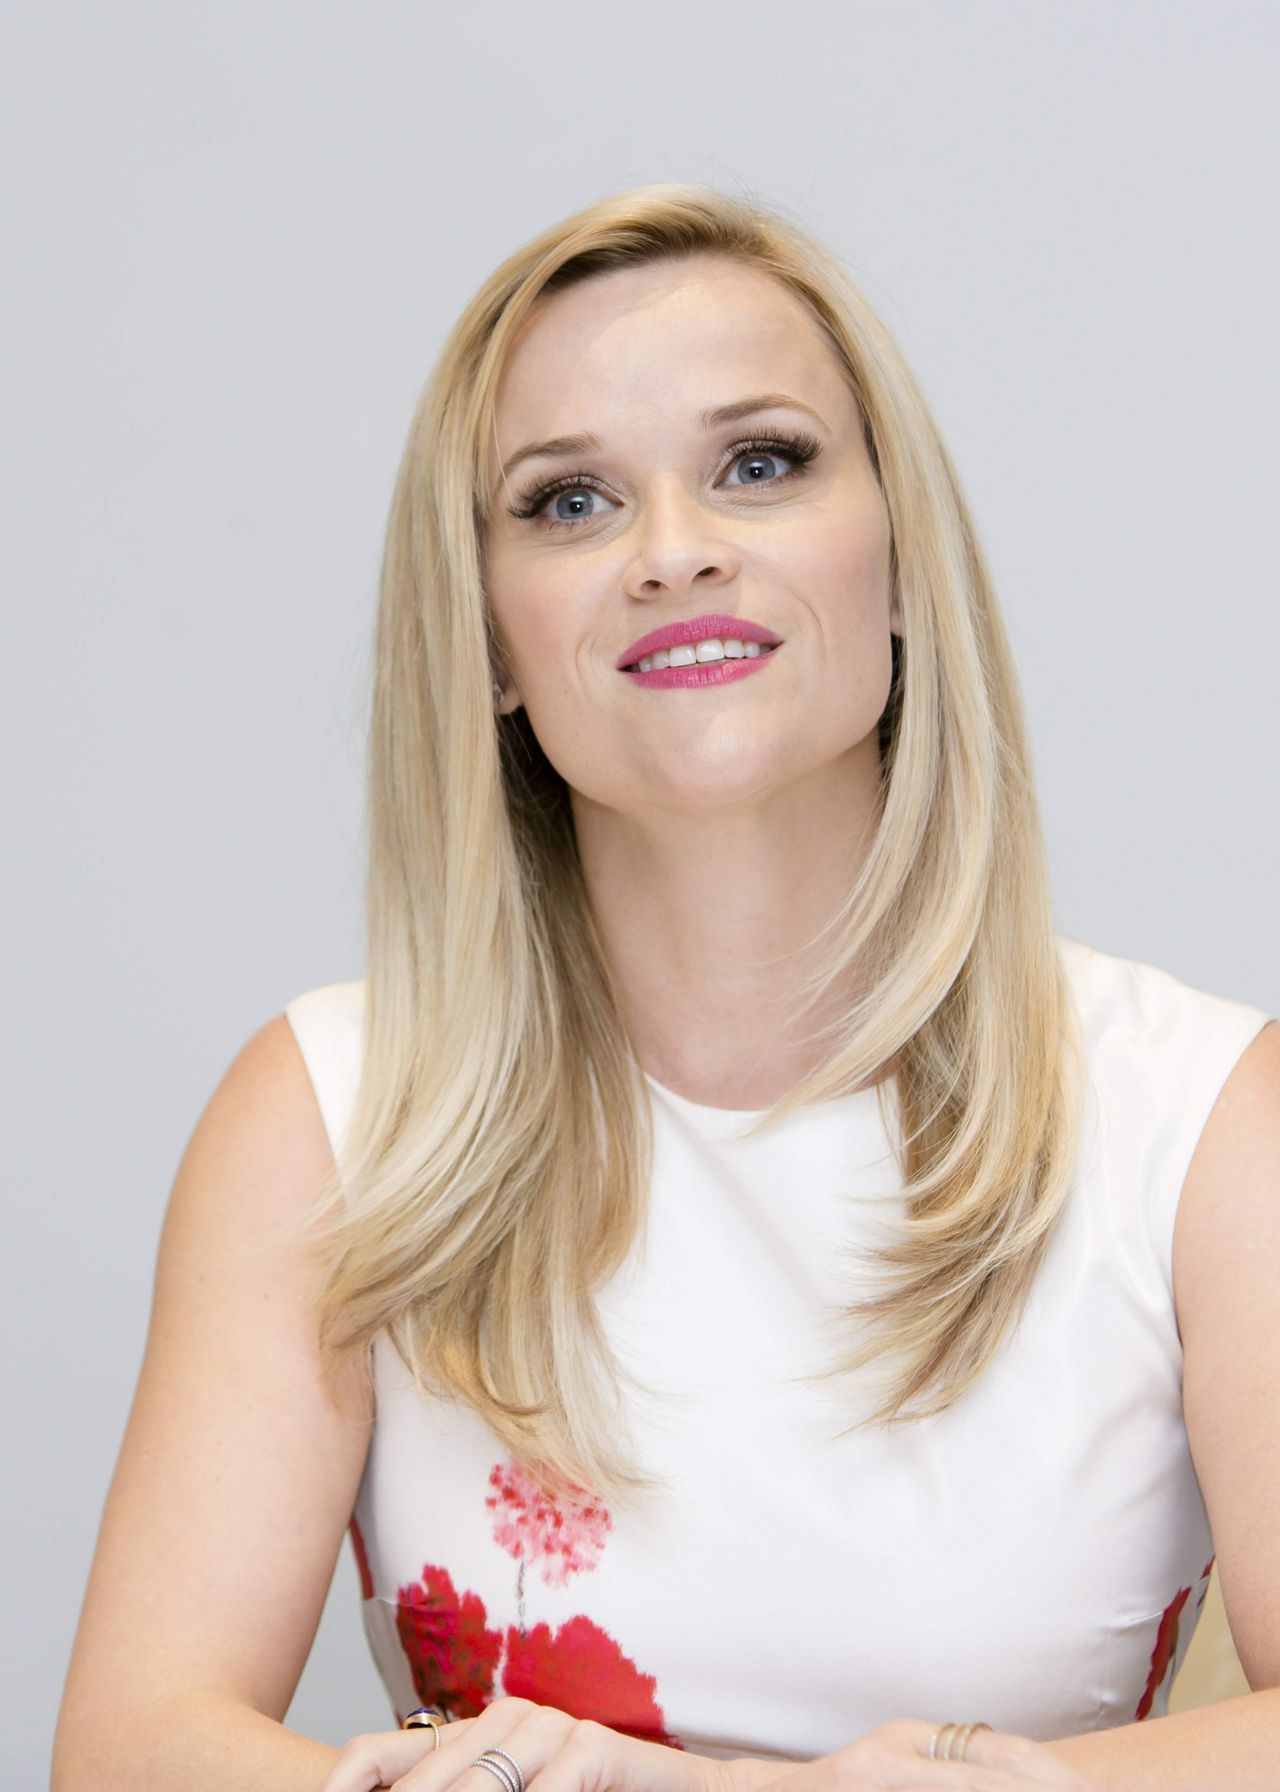 Reese Witherspoon Wild